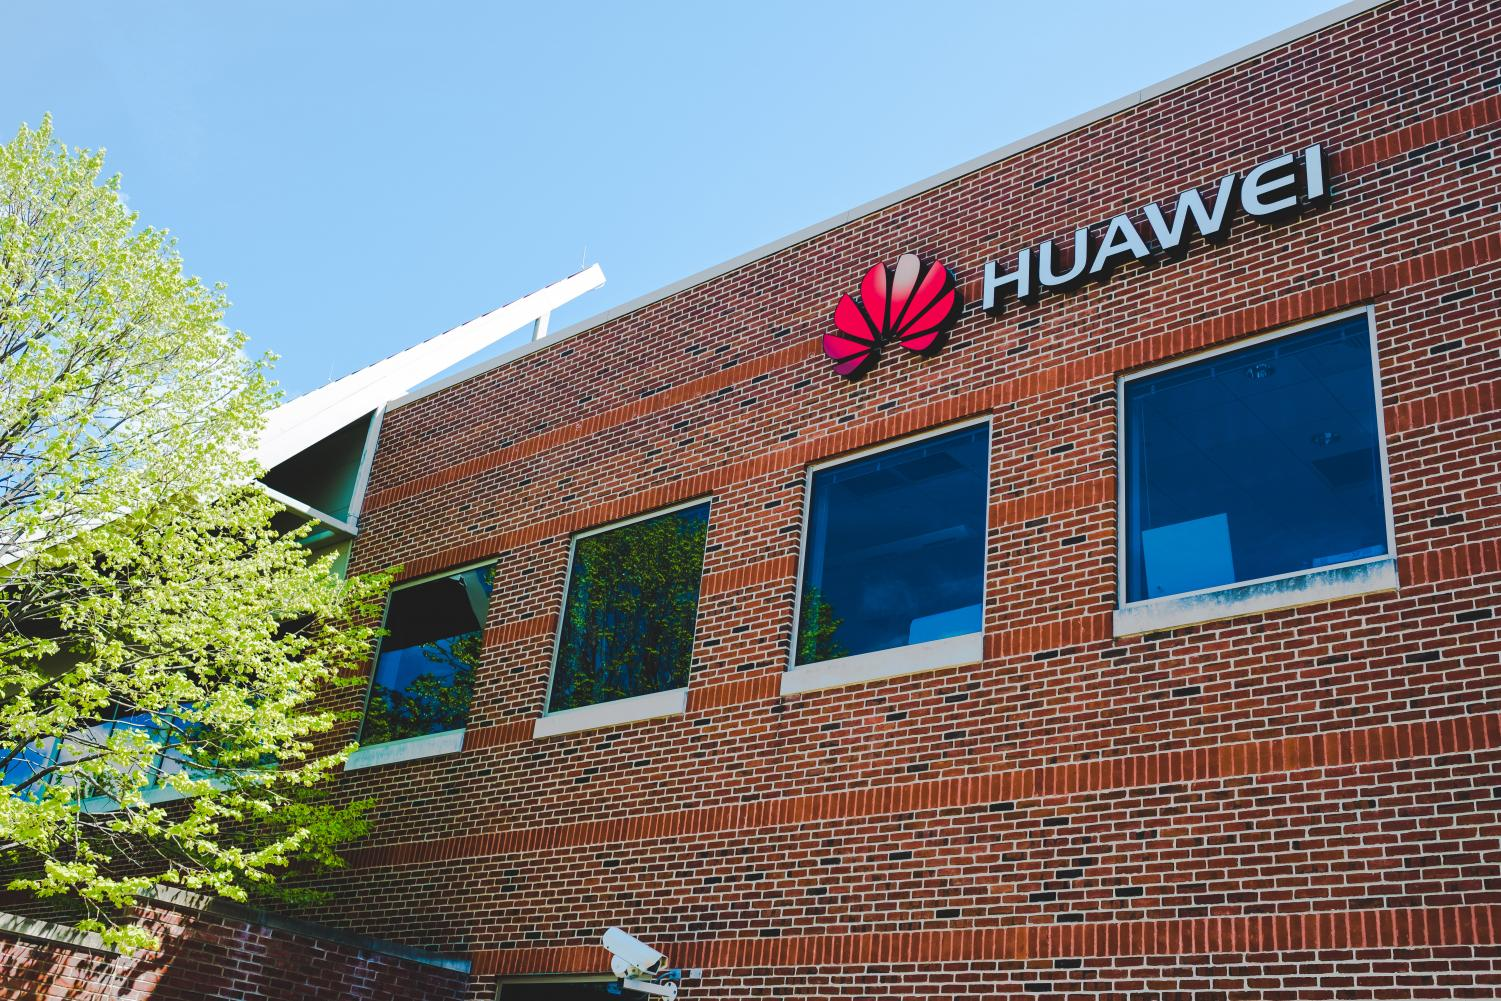 The Huawei office is located at Research Park. The U.S. government has filed a criminal charge against Huawei and its leadership, and as a result, the University has cut ties with the company.